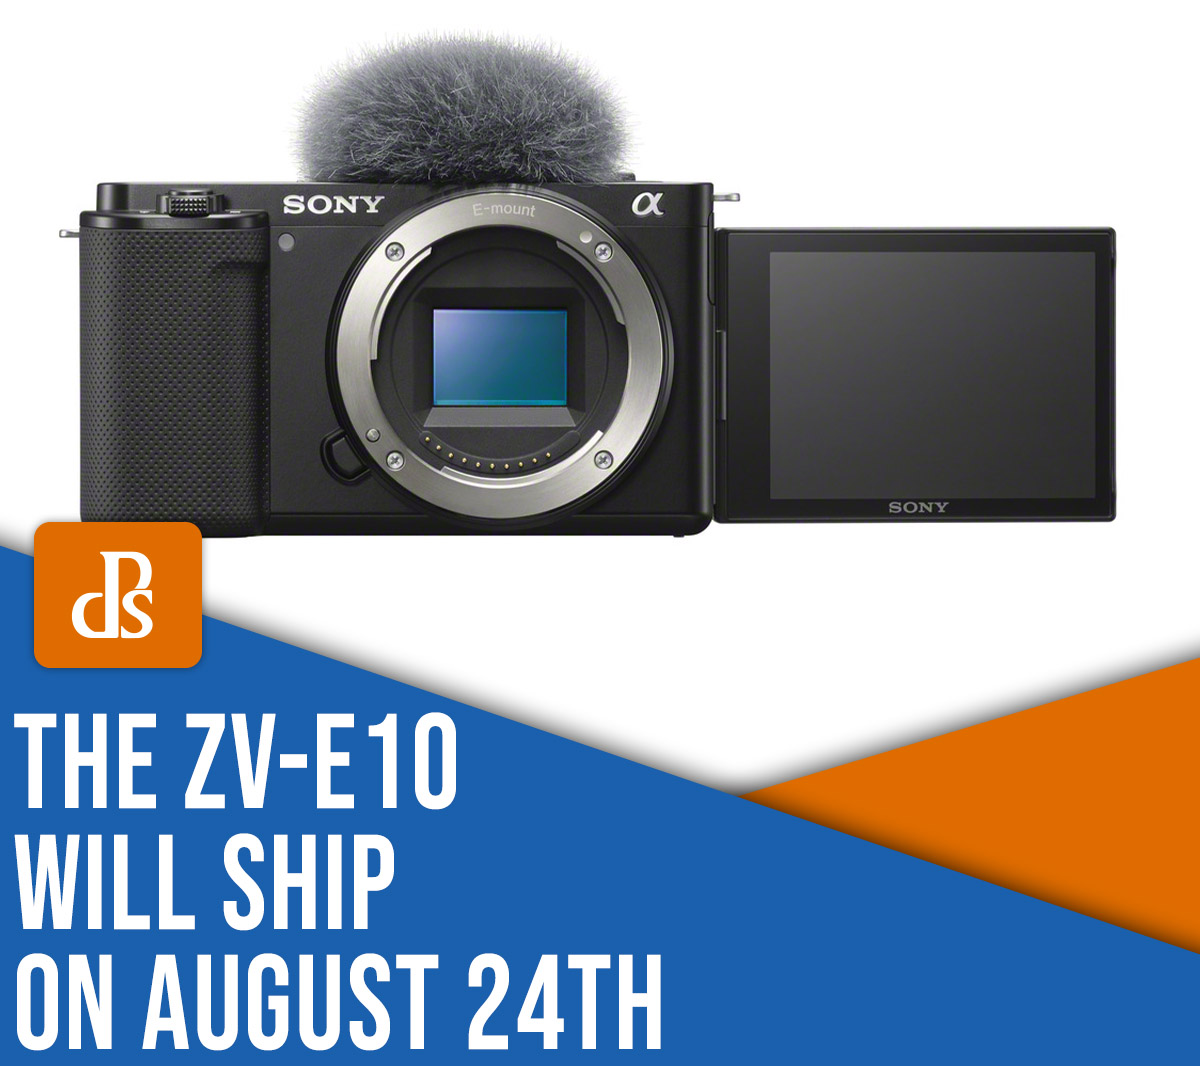 The Sony ZV-E10 will ship on August 24th